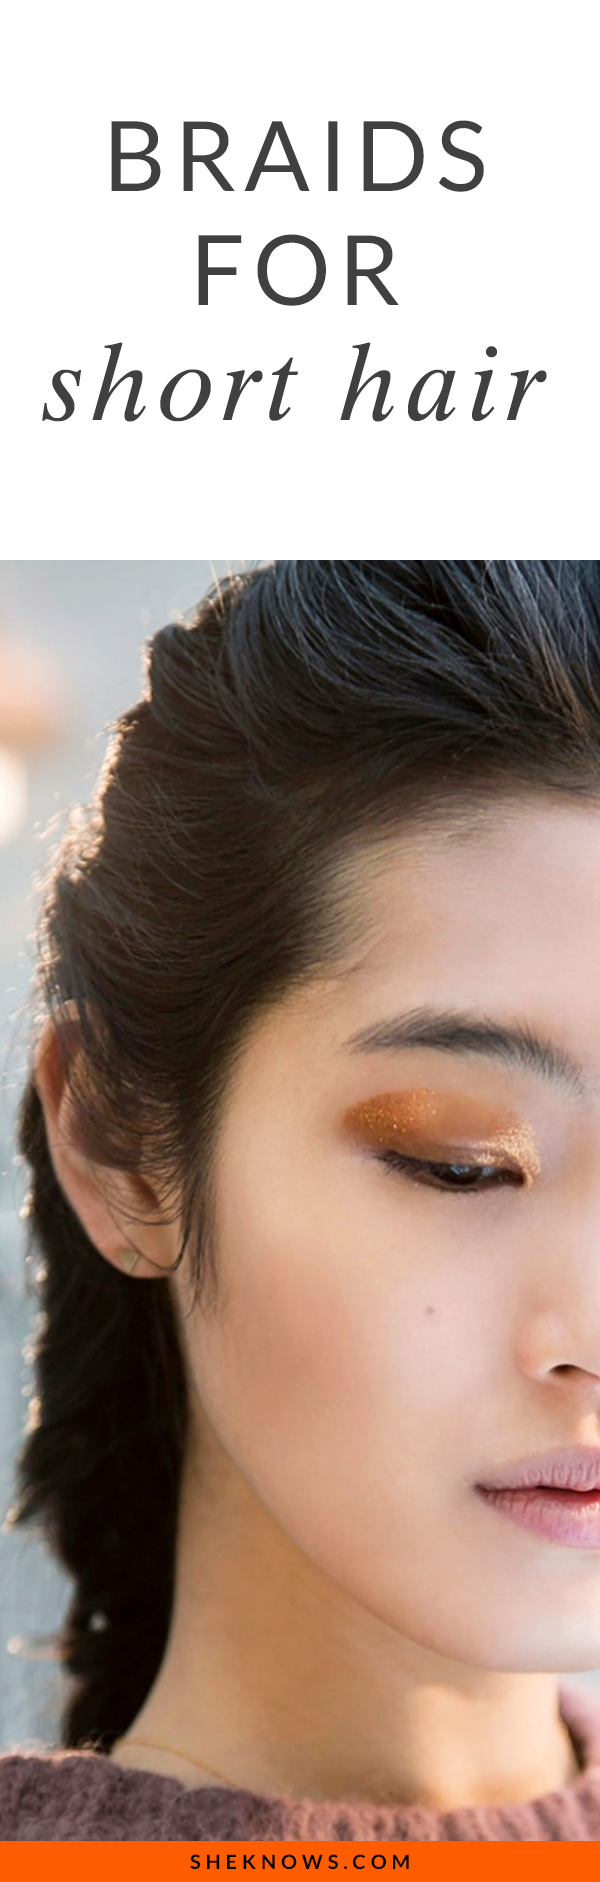 5 Pretty Braids You Can Actually Do on Short Hair